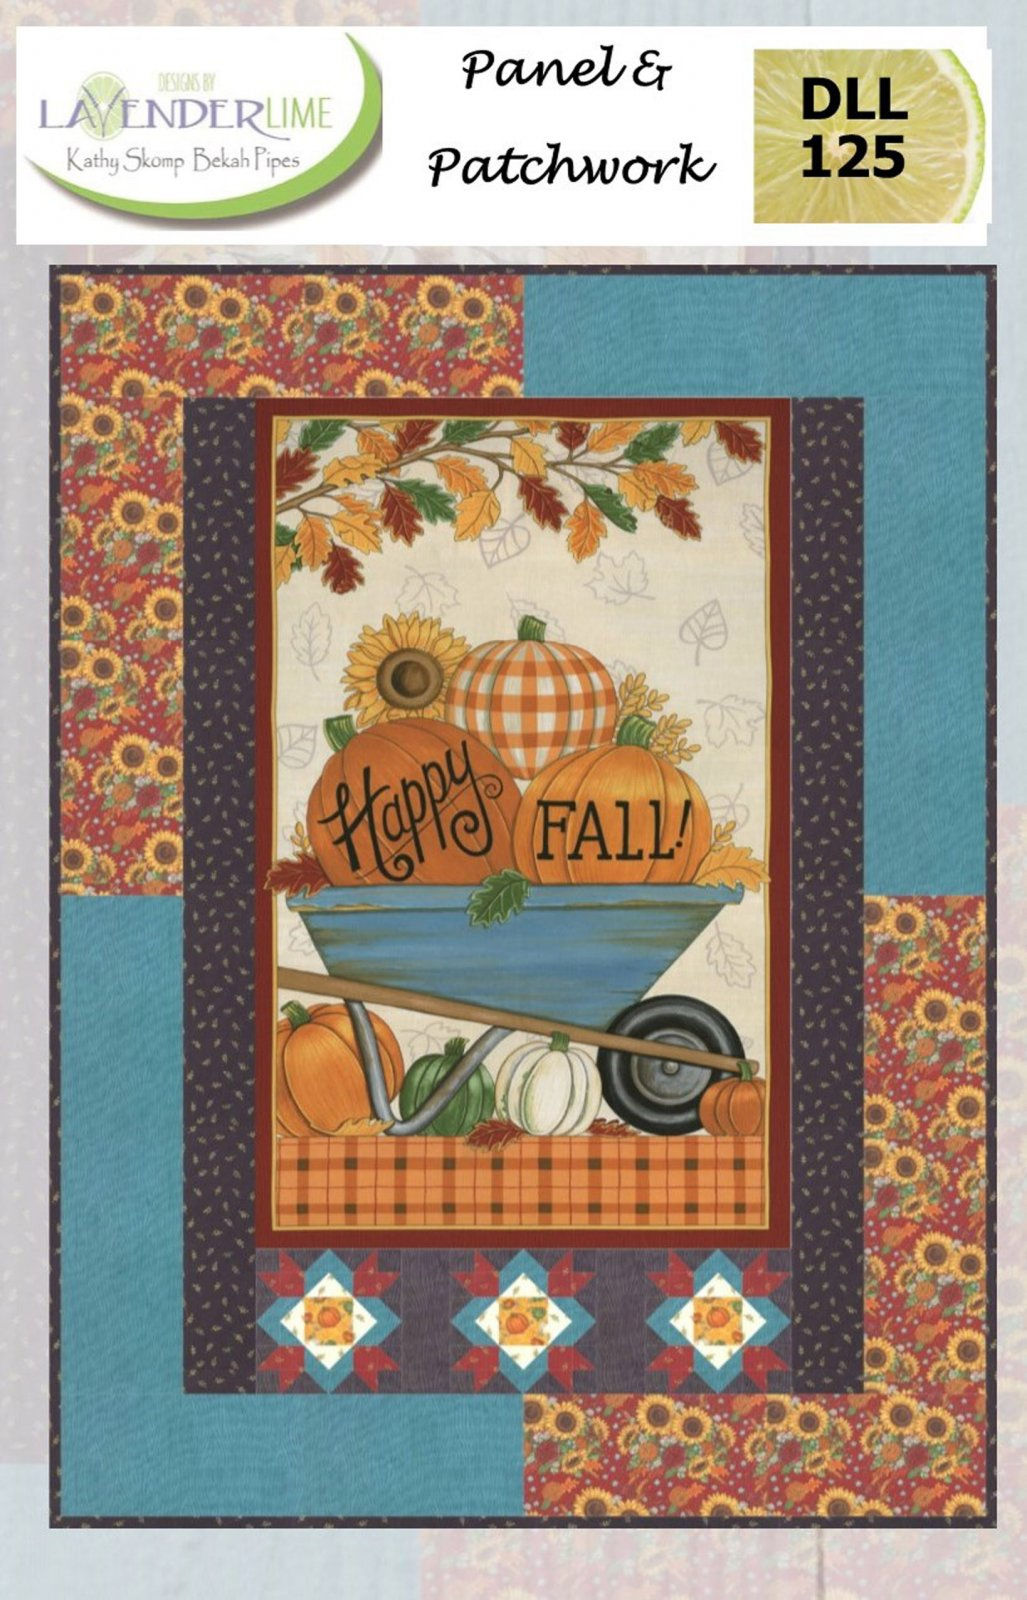 Panel and Patchwork PDF Download